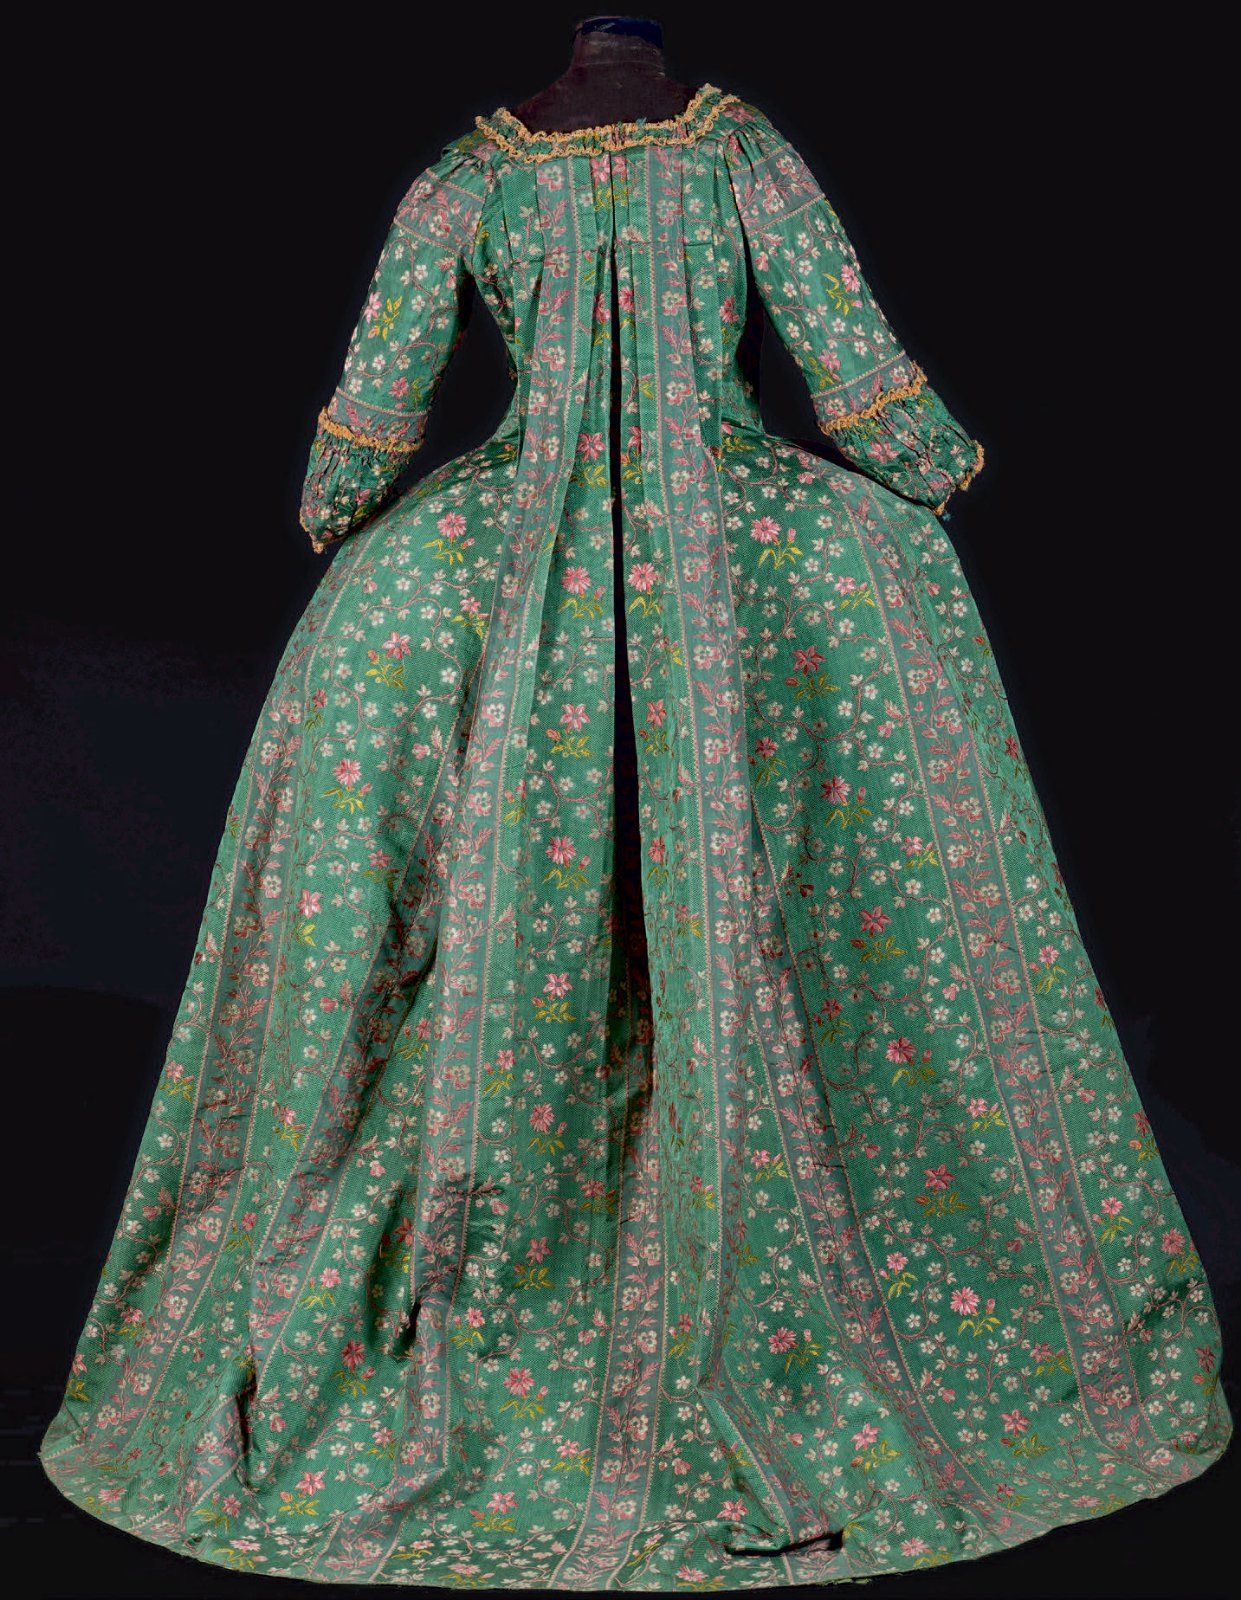 655d72aaef6 Ball gown ca. Robe à la française ca. 1760 Fripperies and Fobs